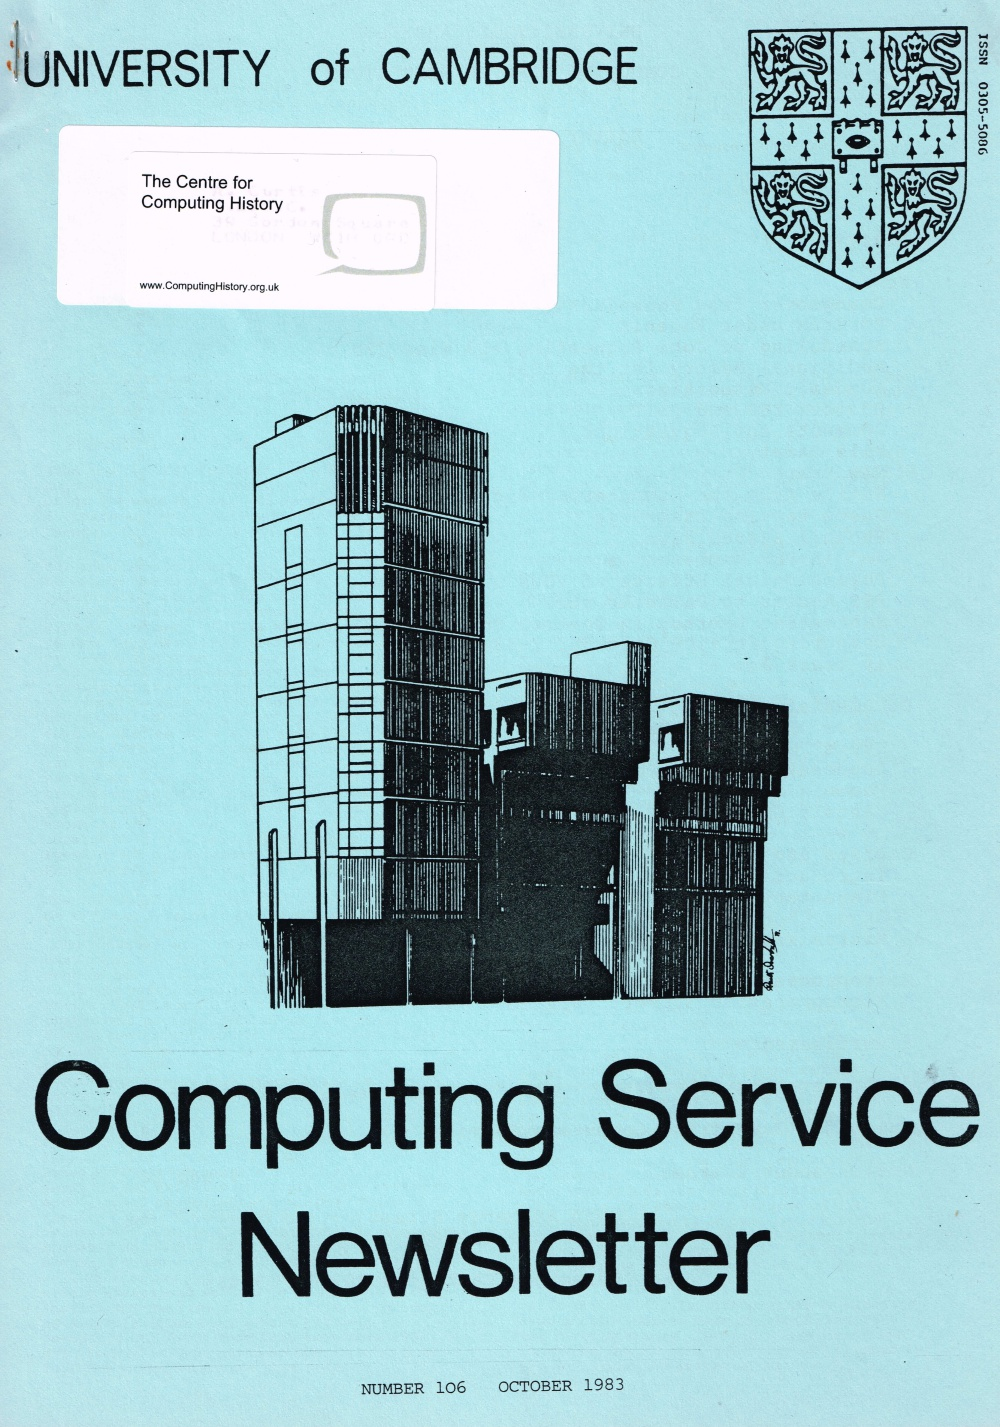 Article: University of Cambridge Computing Service October 1983 Newsletter 106